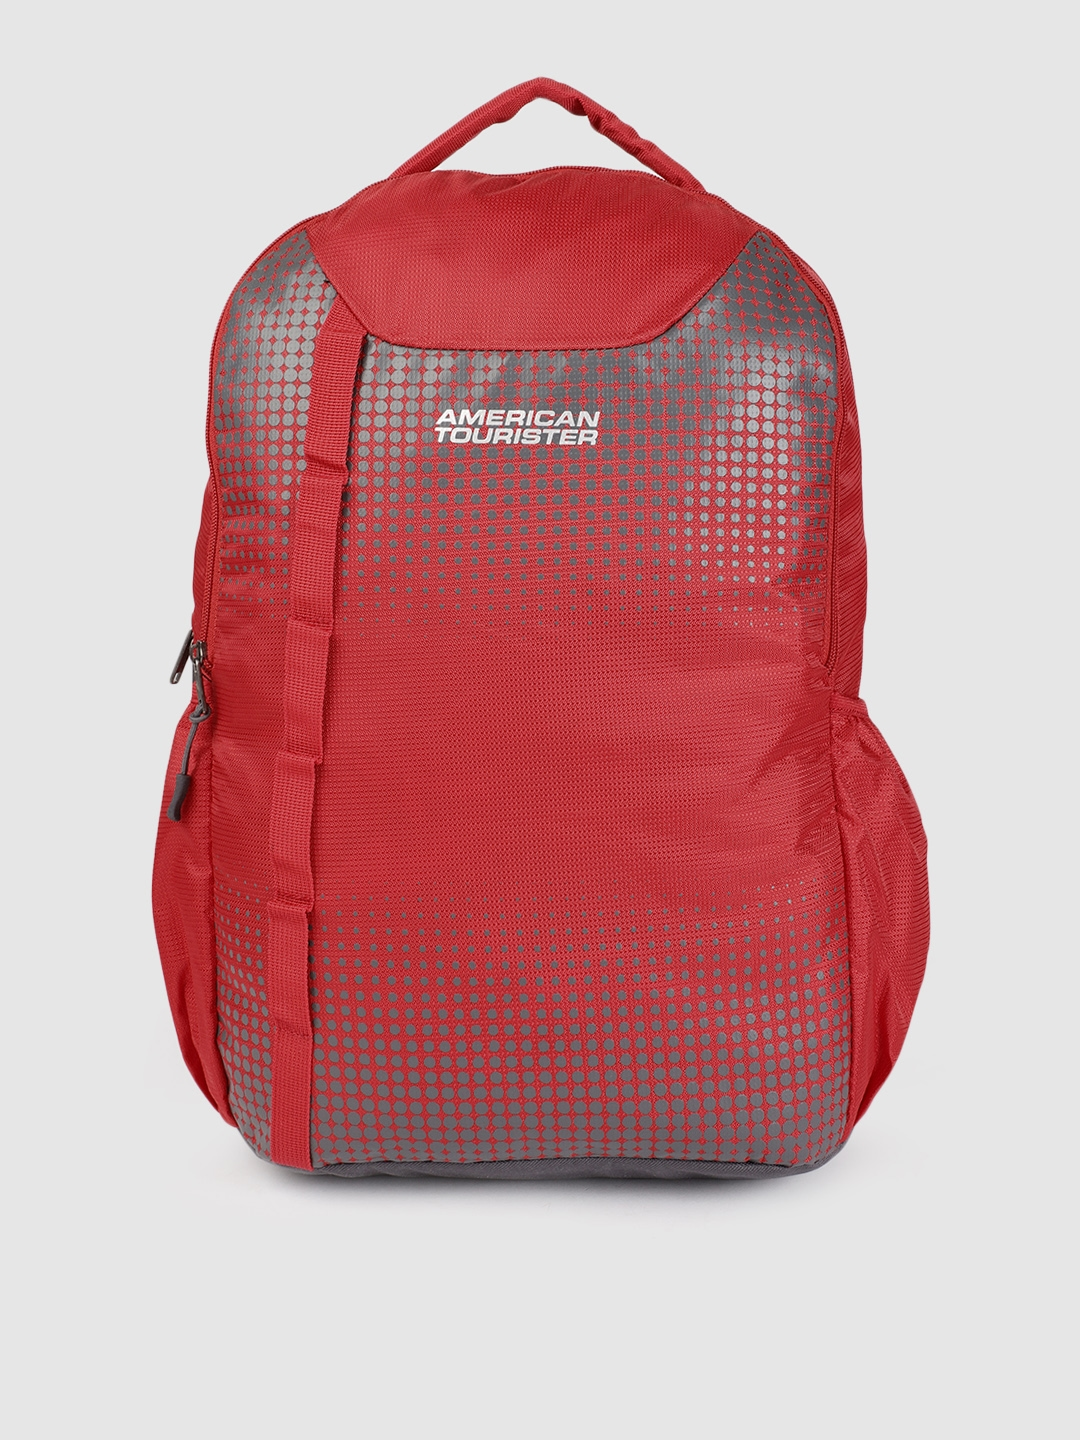 AMERICAN TOURISTER Unisex Red Geometric DAZZ Backpack